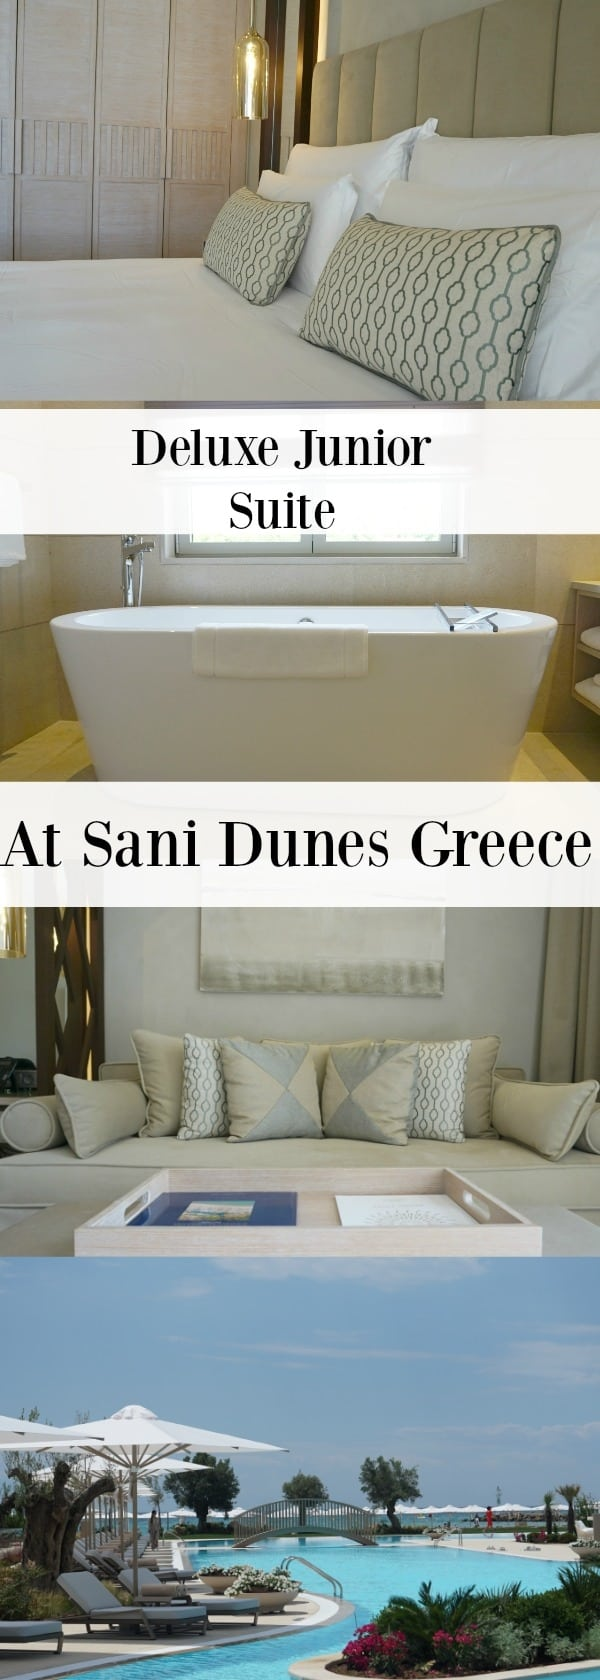 Deluxe Junior Suite At Sani Dunes Luxury Resort Halkidiki Greece